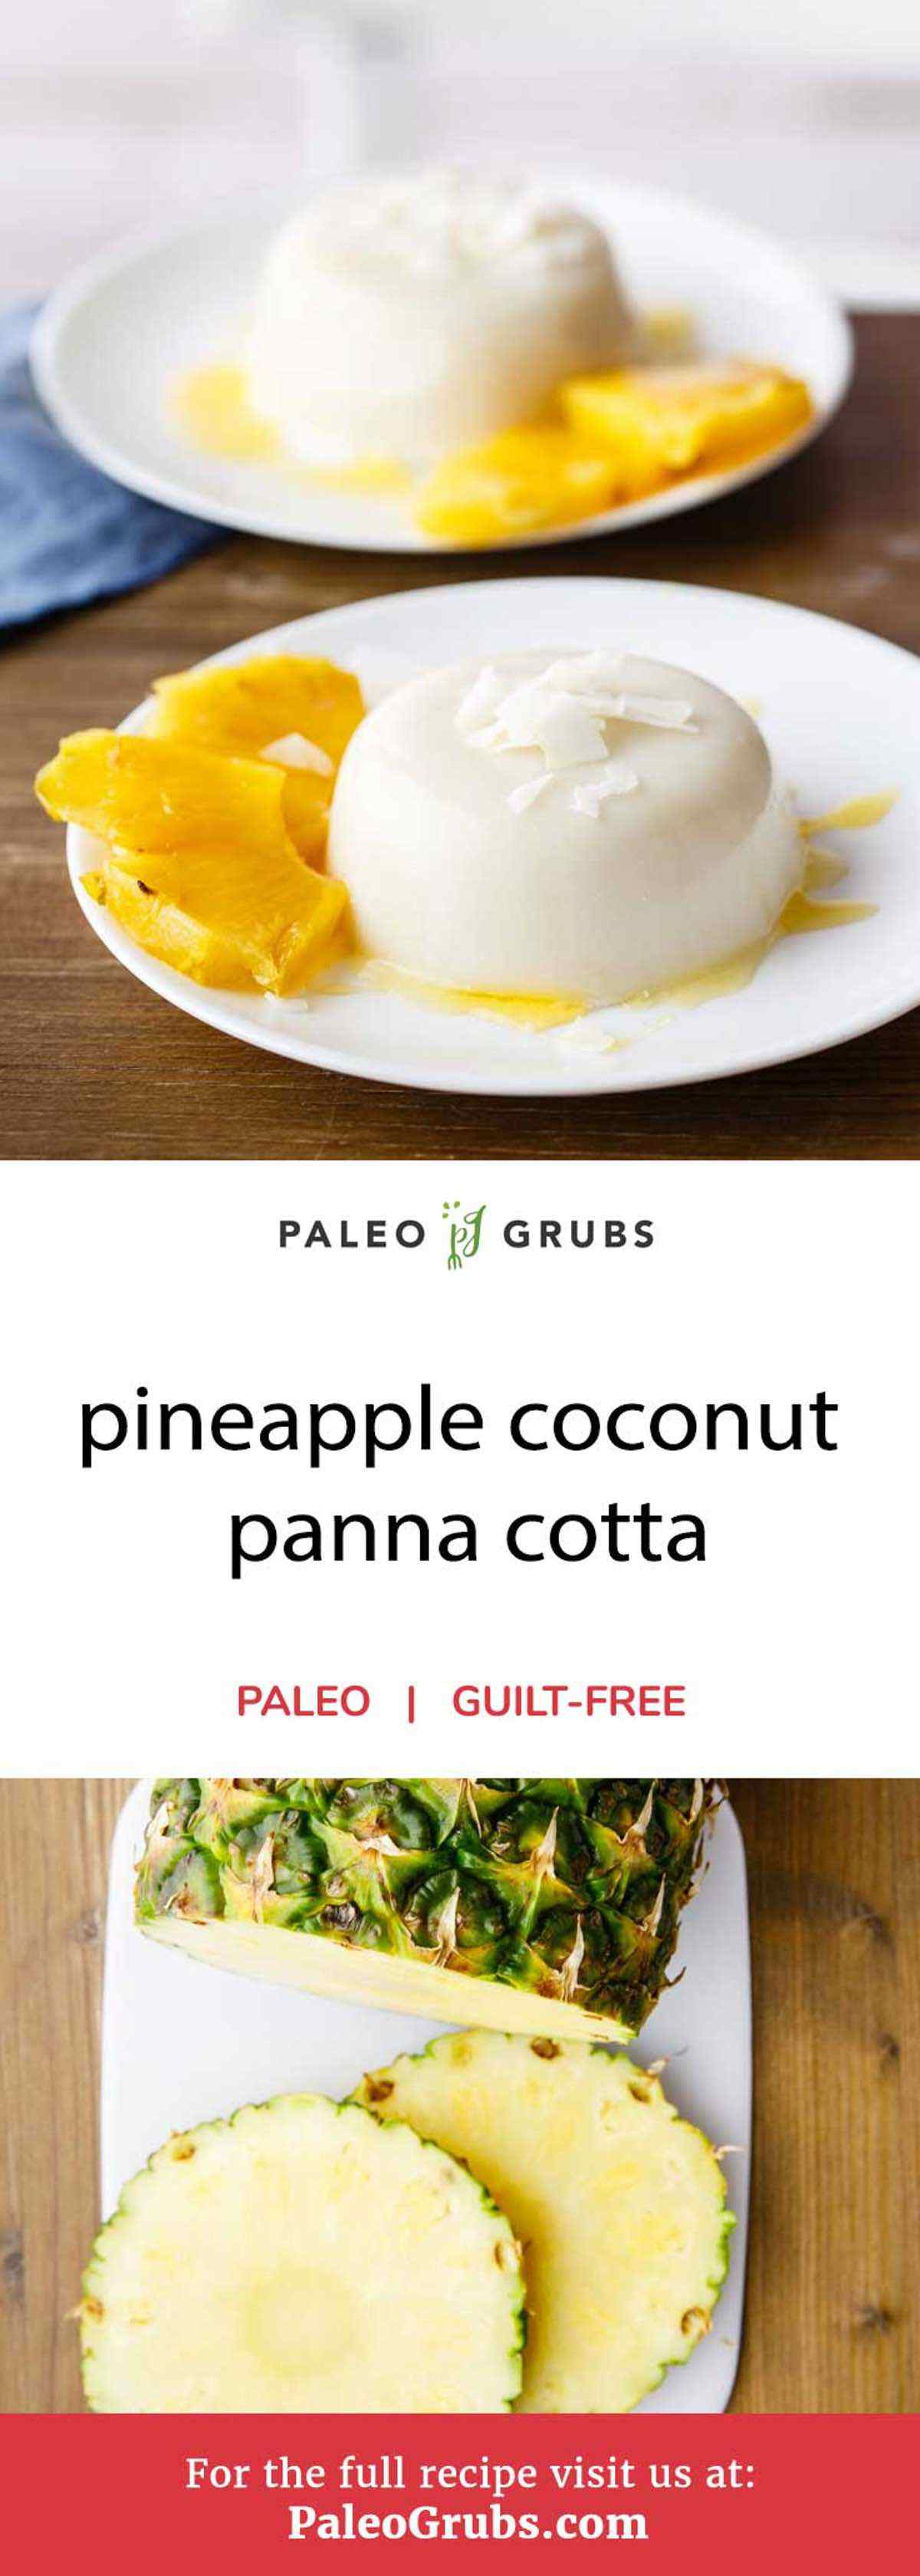 This pineapple coconut panna cotta recipe is mouthwateringly delicious and completely paleo-friendly thanks to being made with all natural ingredients. It makes a delicious panna cotta with grass-fed gelatin powder, coconut milk, honey and vanilla extract that is served with roasted pineapples that have been glazed with a yummy honey and lemon zest mixture.